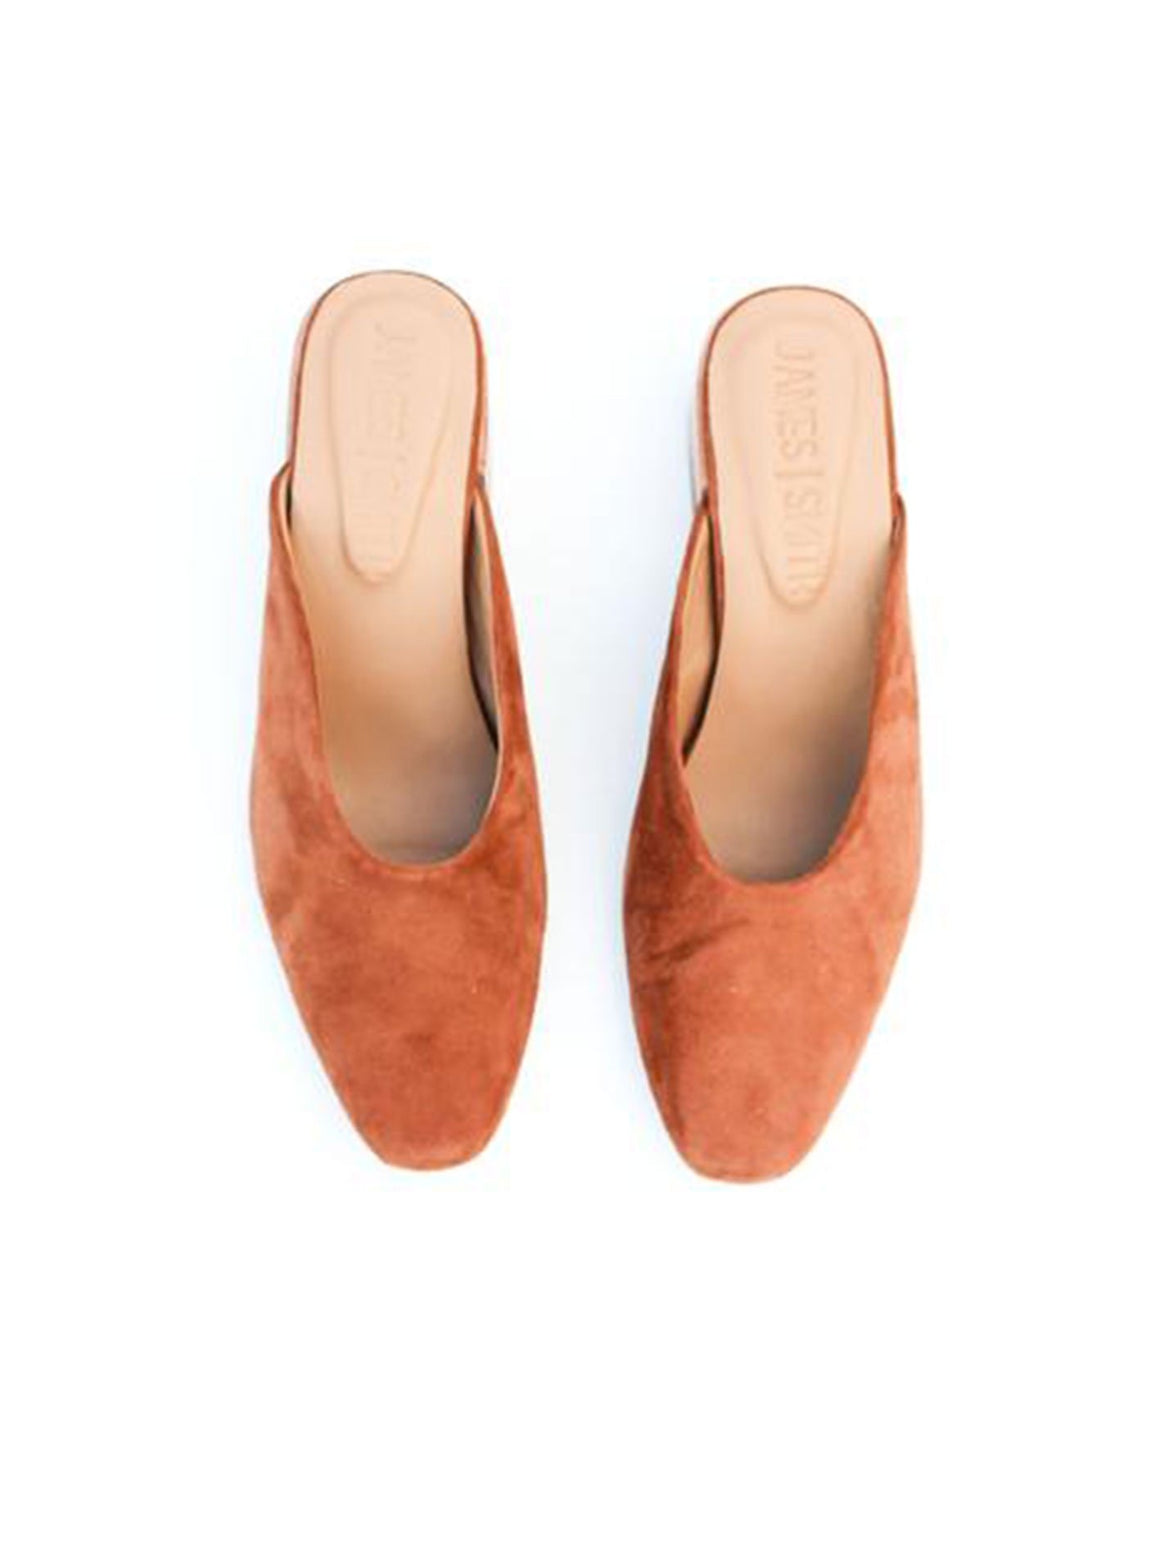 James Smith Cafe Society Tan Burnt Orange Mule Shoes | Perlu